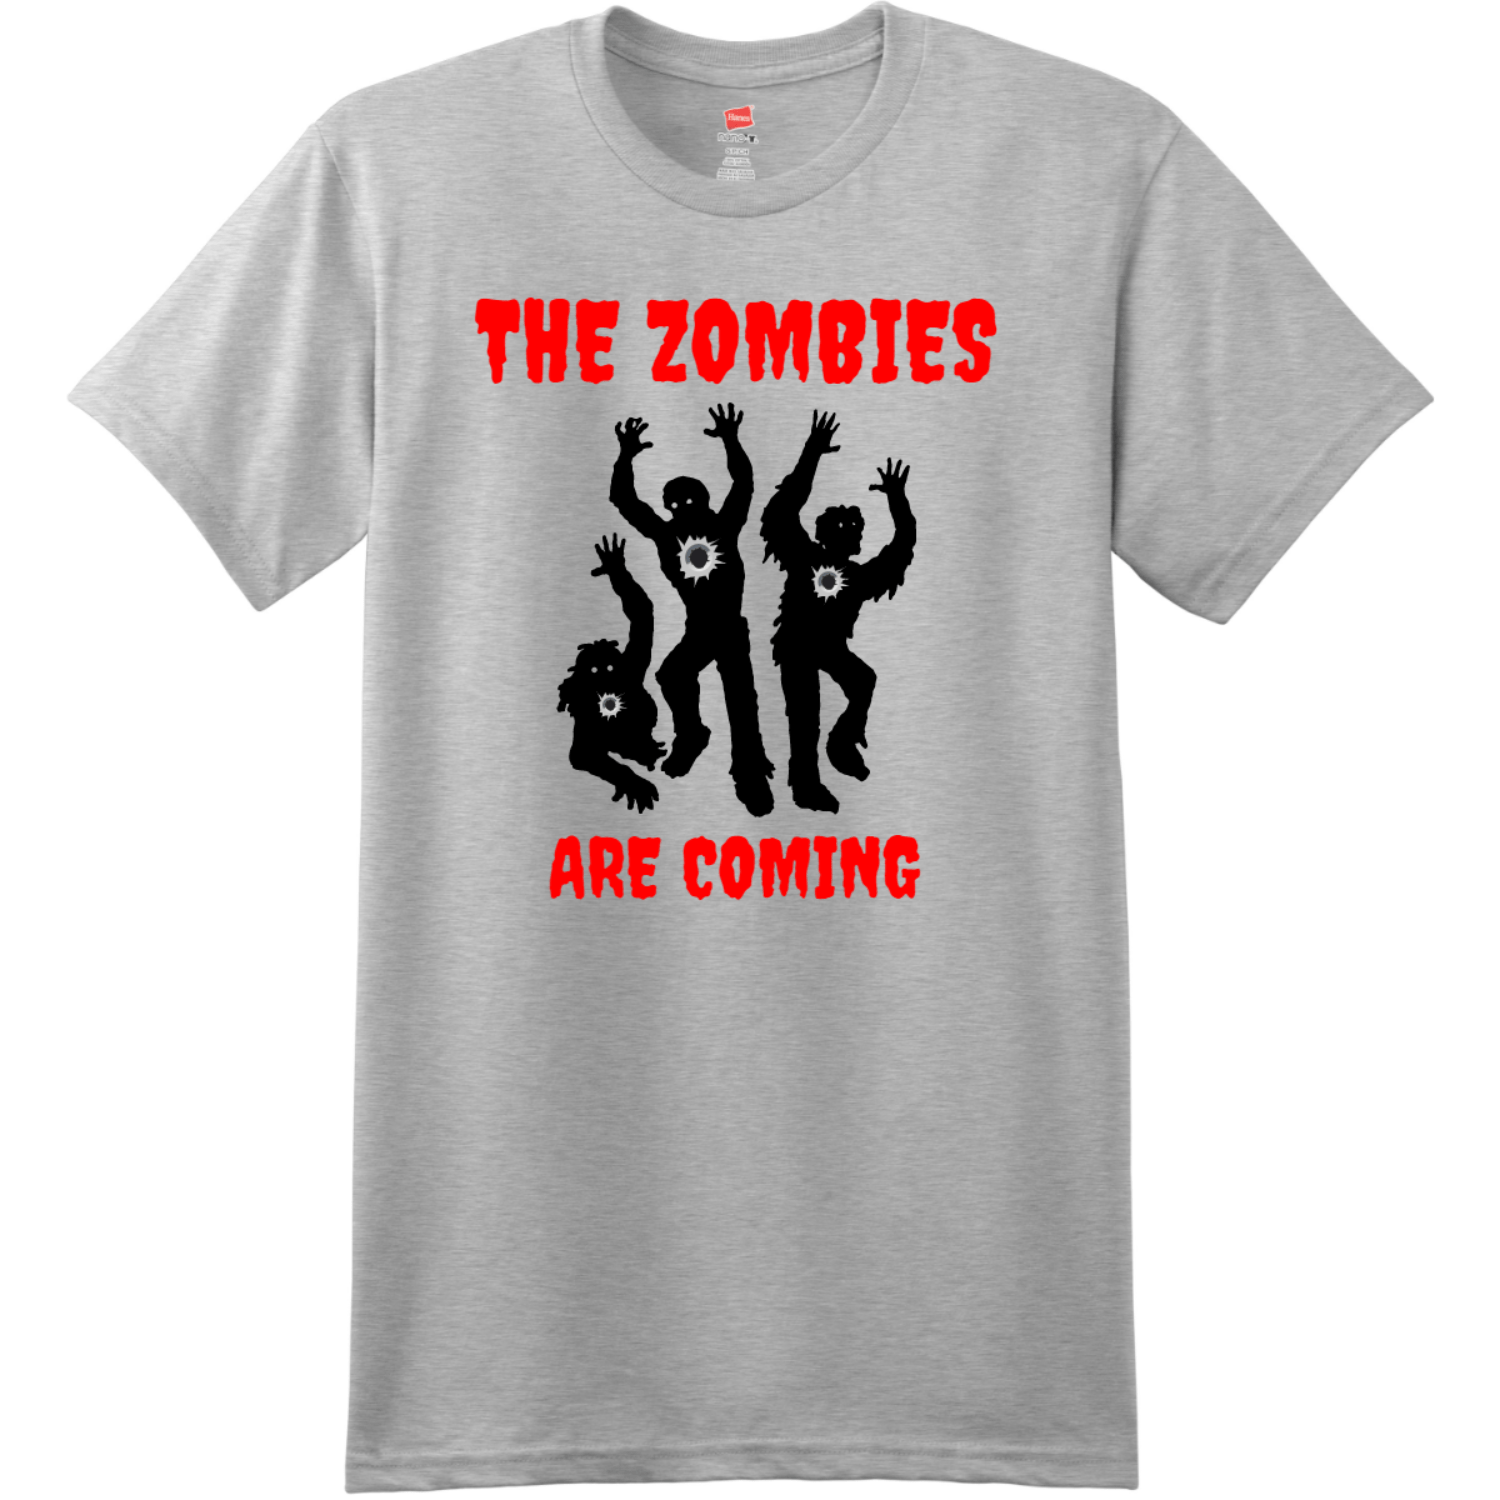 The Zombies Are Coming T Shirt Ash Hanes Nano 4980 Ringspun Cotton T Shirt